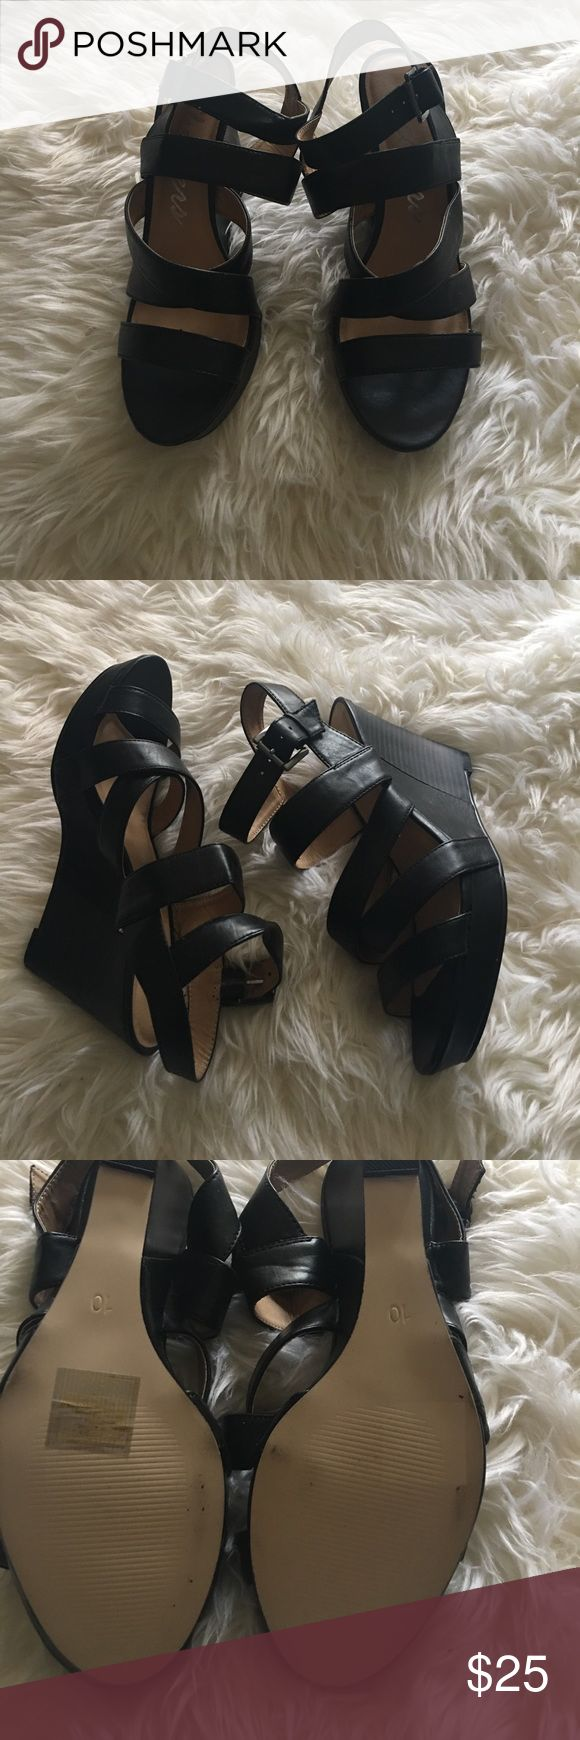 Skechers Black Strip Sandals!! Once worn about twice. Very comfortable sandal. Skechers Shoes Sandals